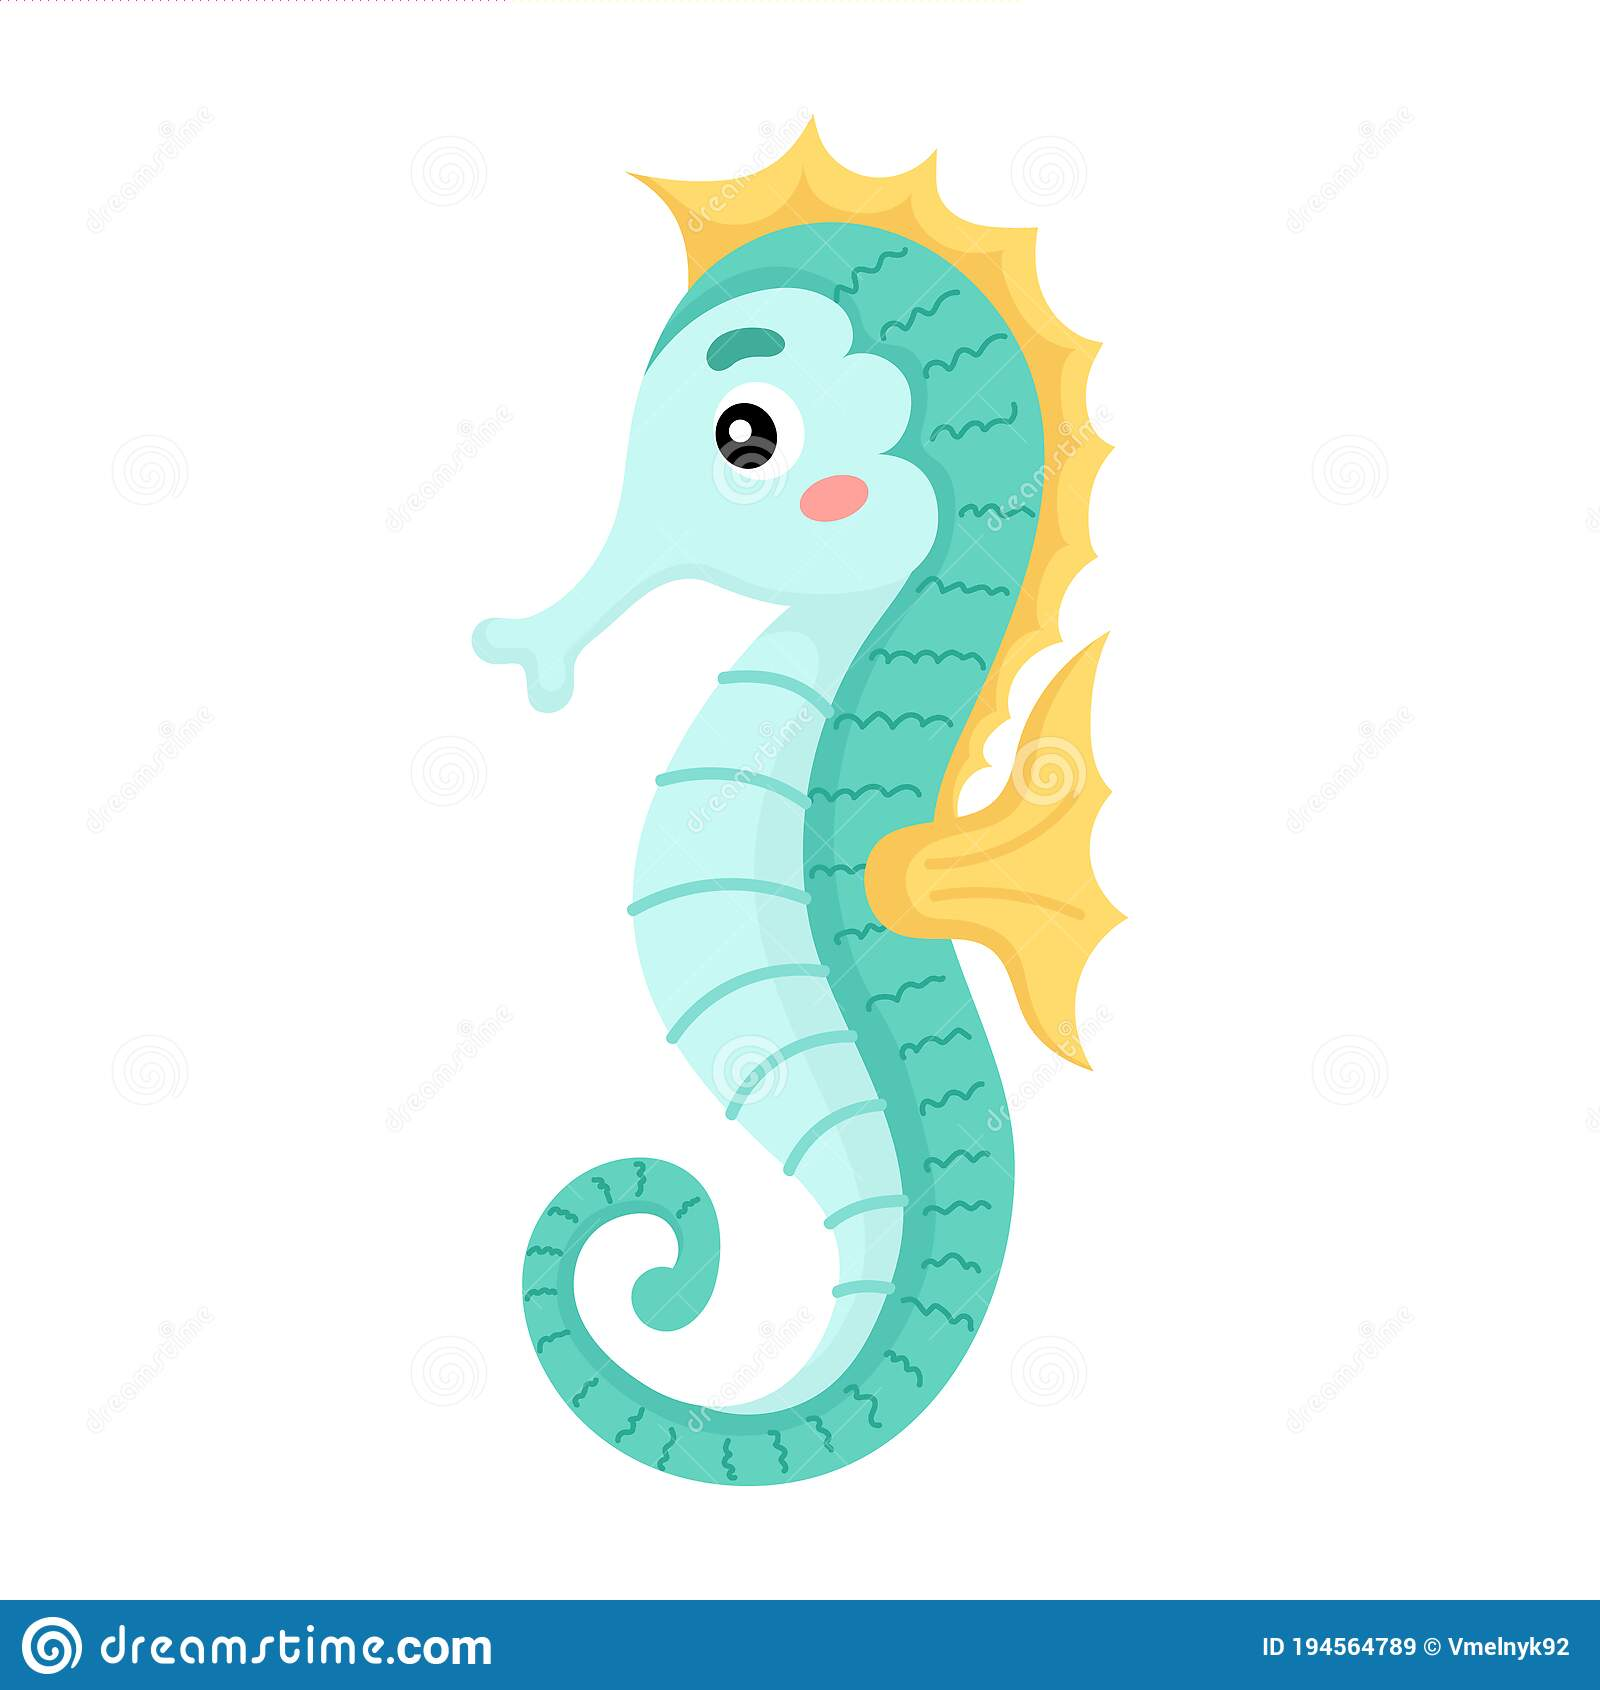 Cute Funny Seahorse Print On White Background Ocean Cartoon Animal Character For Design Of Album Scrapbook Greeting Card Stock Vector Illustration Of Banner Baby 194564789